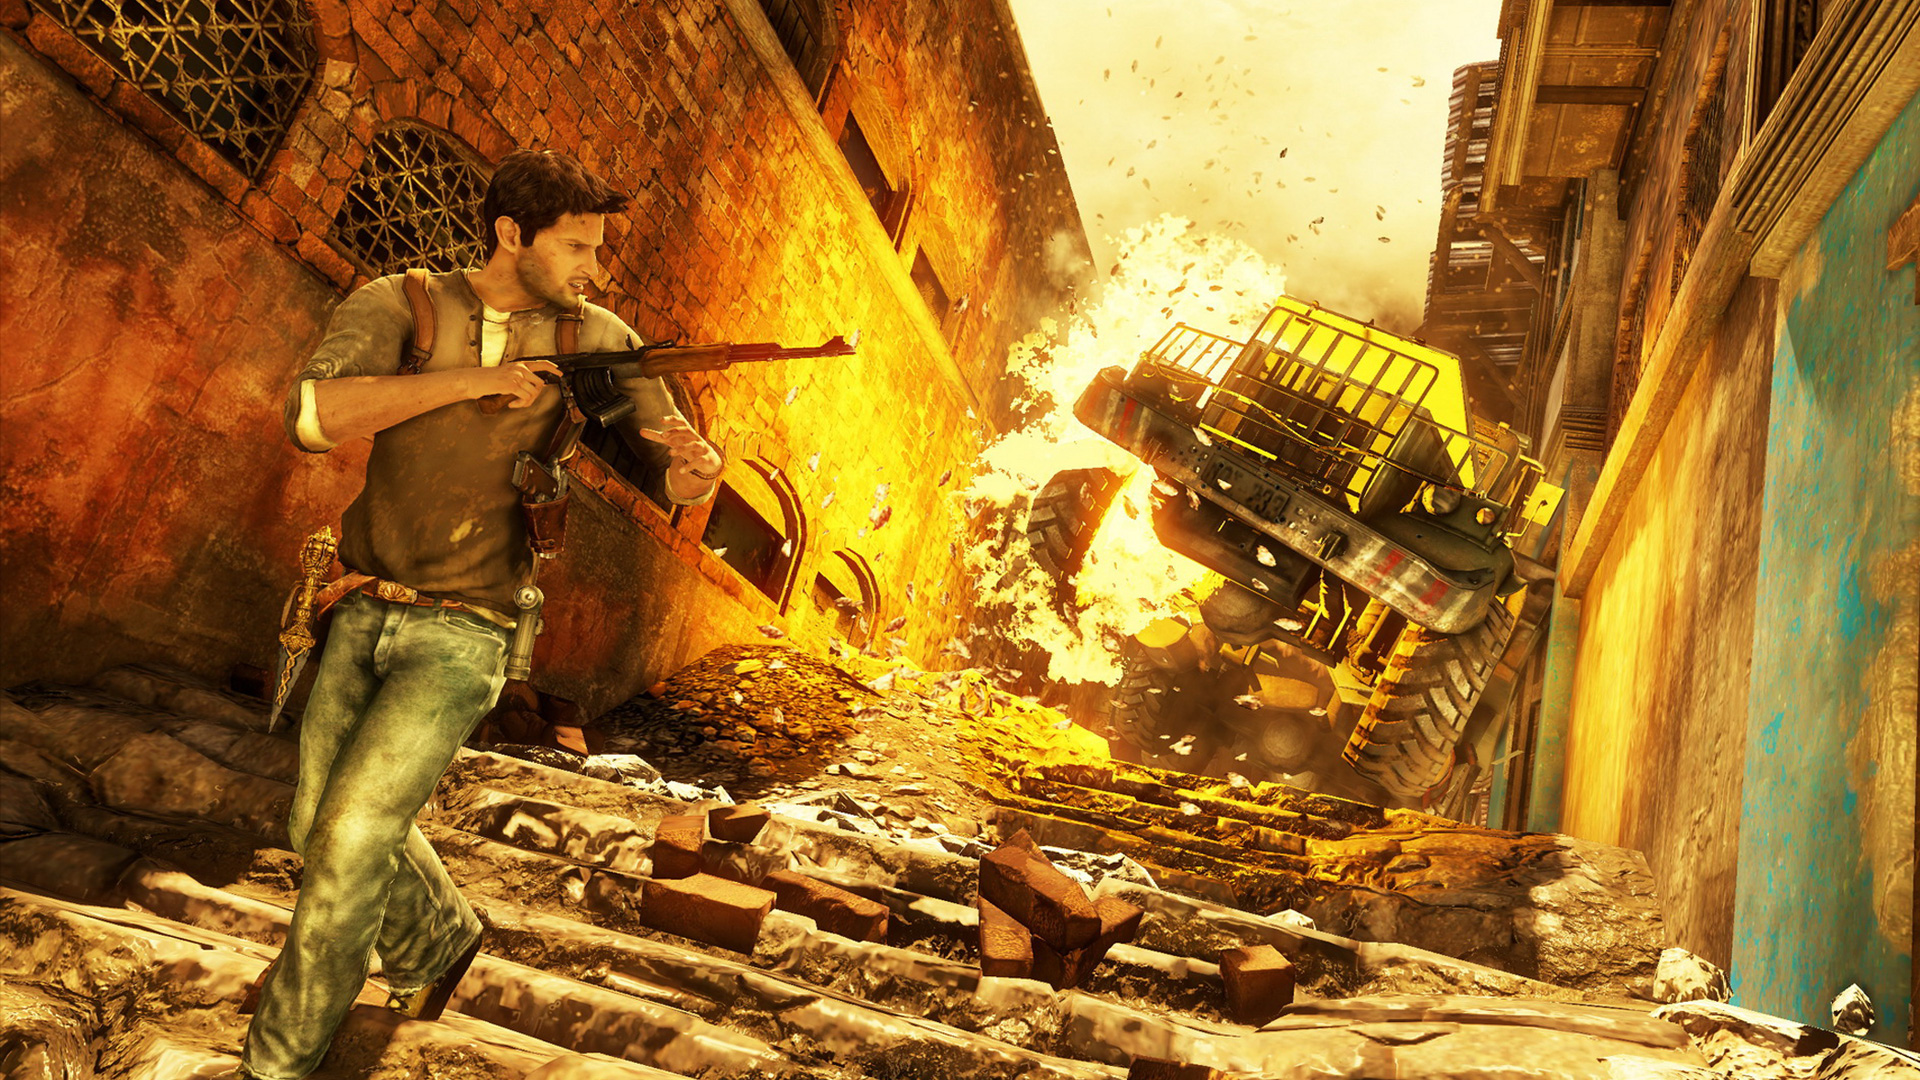 Uncharted 2 Among Thieves Wallpaper in 1920x1080 1920x1080